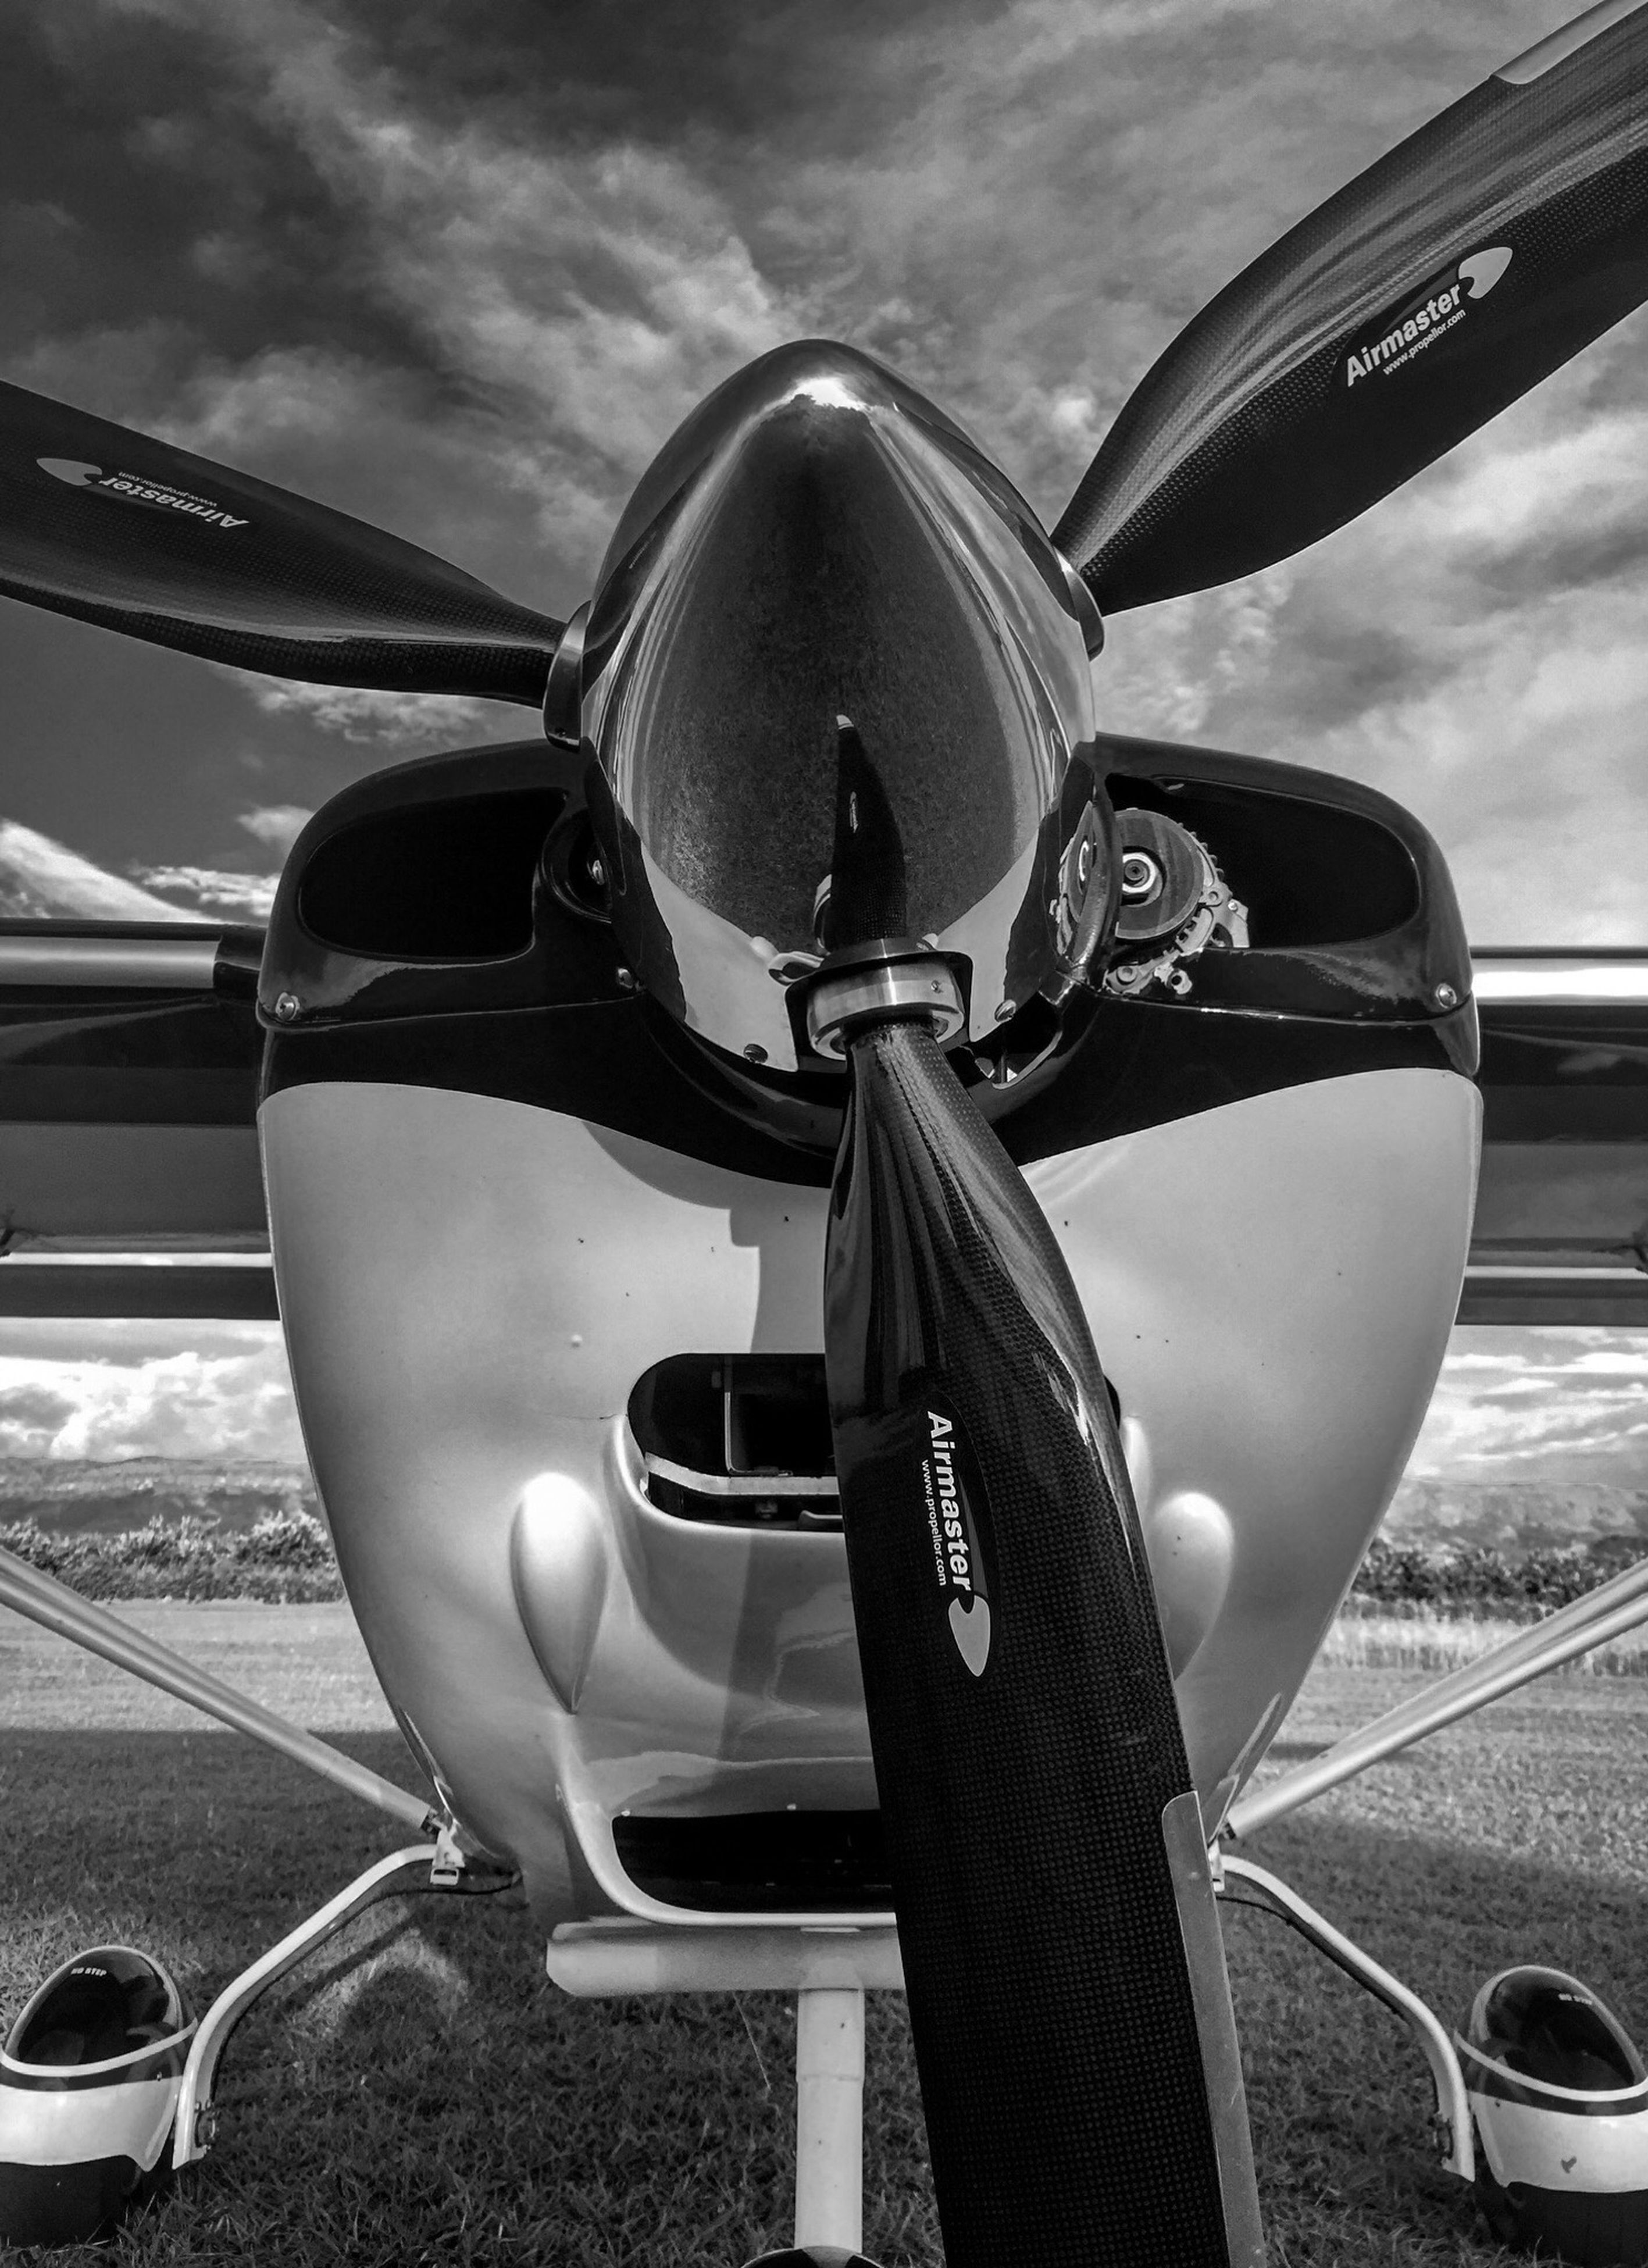 transportation, mode of transport, car, airplane, air vehicle, land vehicle, sky, travel, part of, cloud - sky, day, vehicle part, sunlight, stationary, outdoors, no people, vehicle interior, street, close-up, aircraft wing